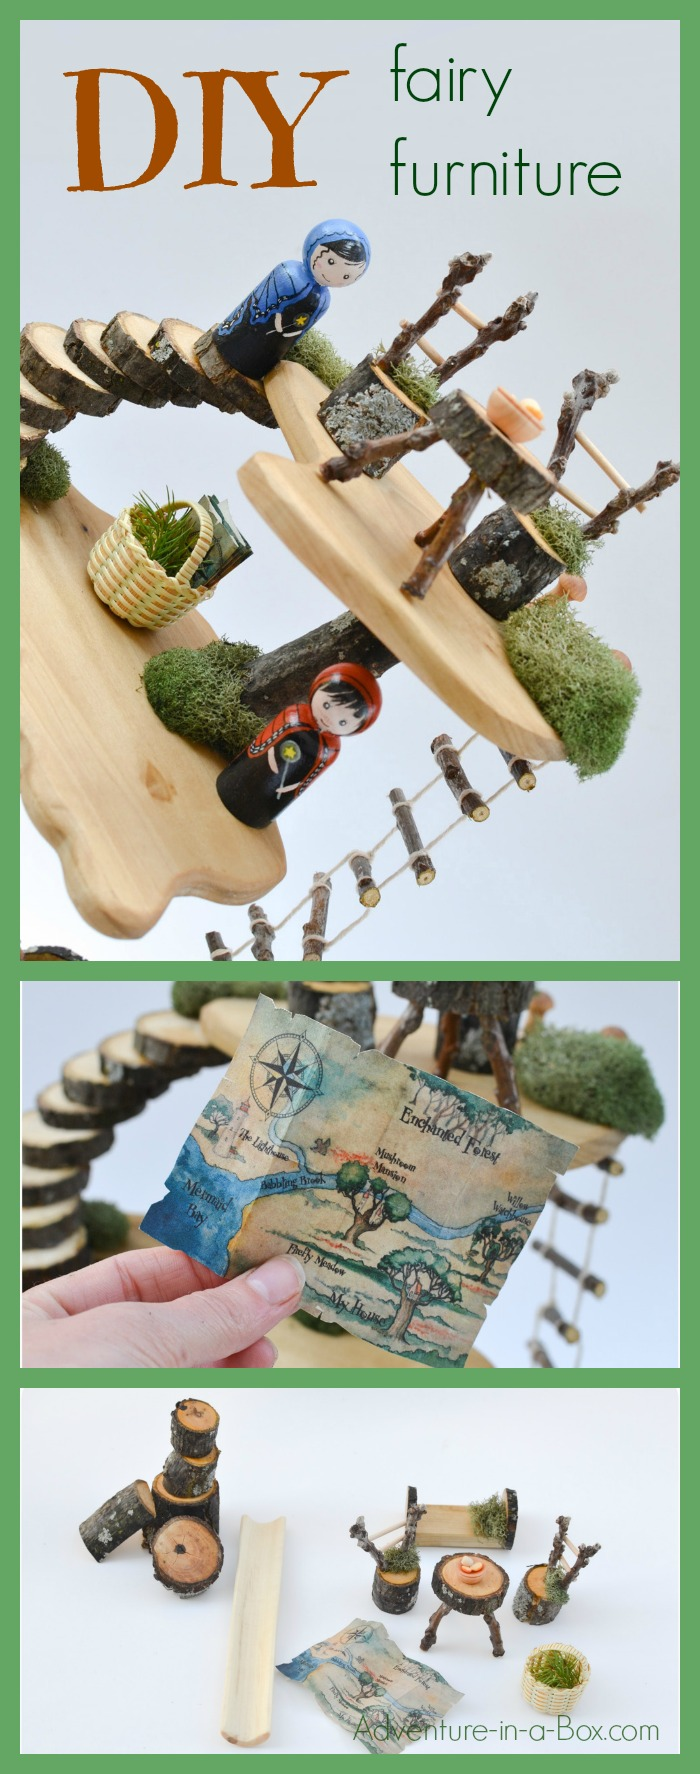 DIY Fairy Furniture: build homemade toyhouse furniture from natural ...